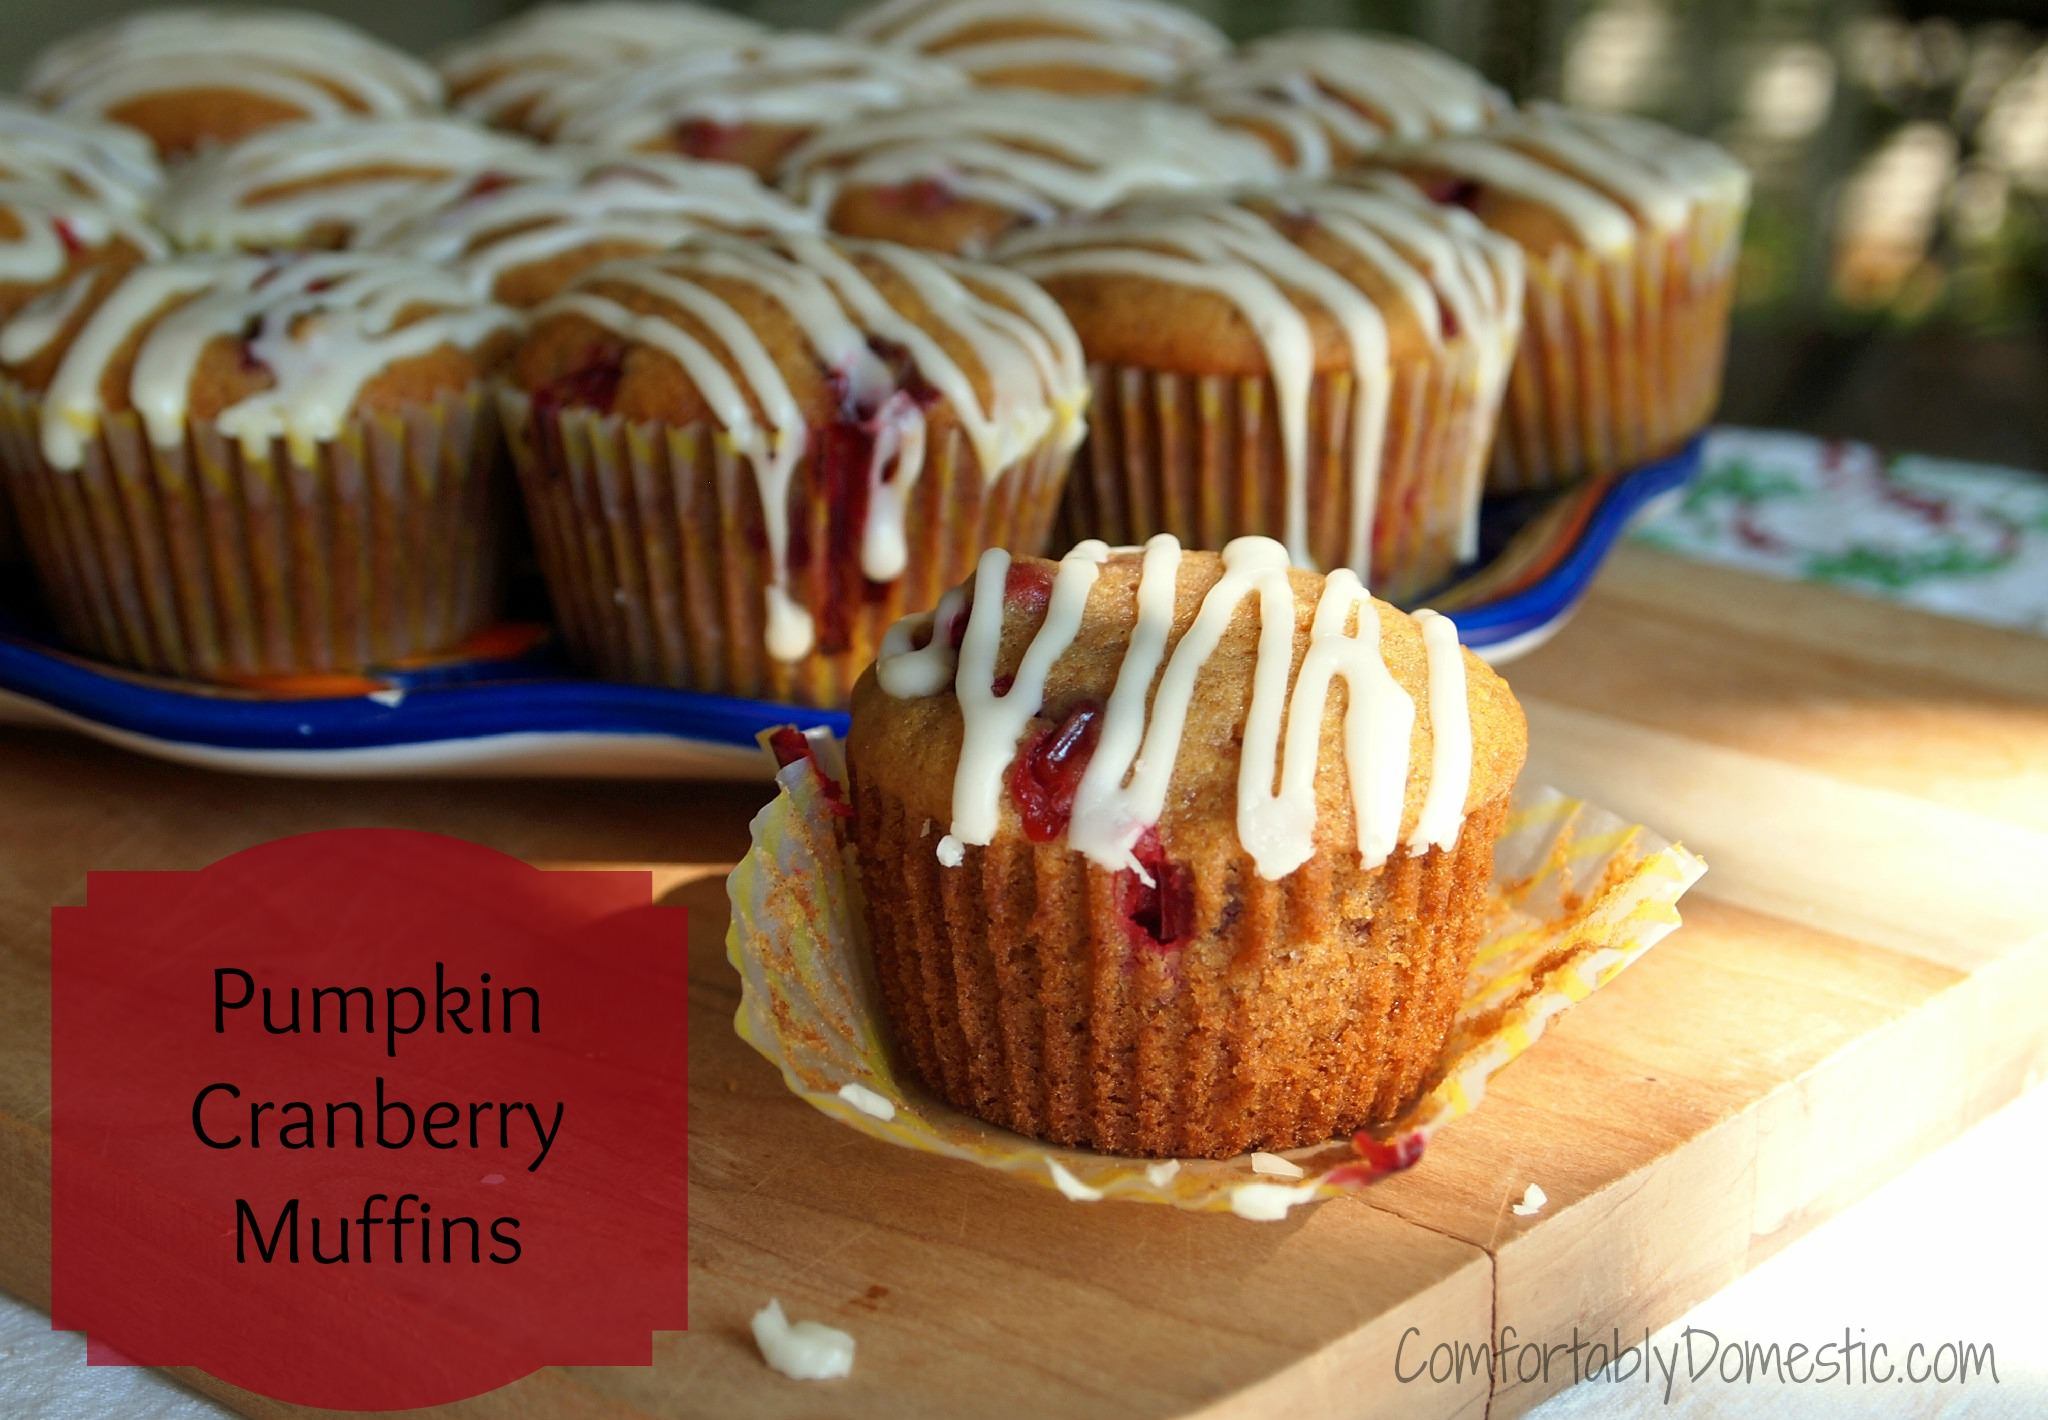 Pumpkin cranberry muffins  use the best flavors of fall to create a moist, fluffy muffin for breakfast or any time snack. The drizzle of sweet glaze on top takes them over the top. | ComfortablyDomestic.com